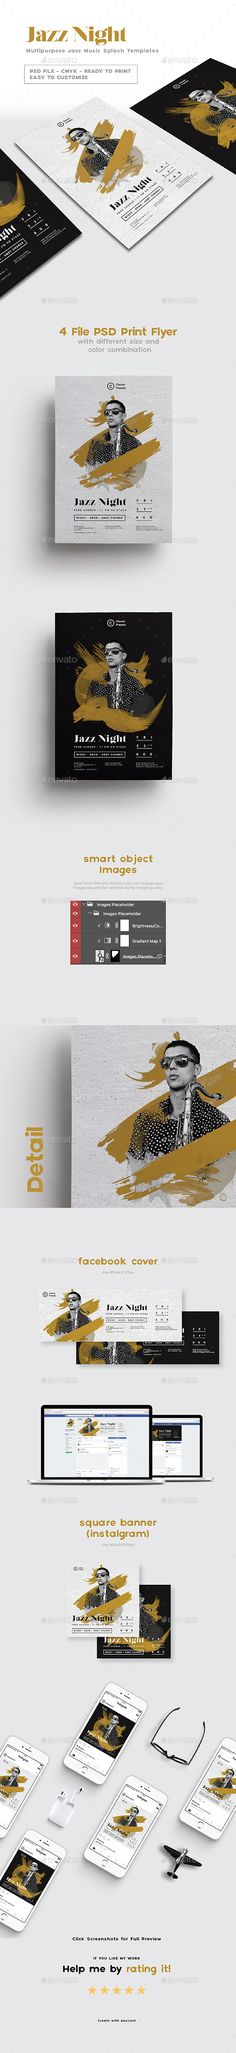 Multipurpose Jazz Music Splash Flyer Templates PSD